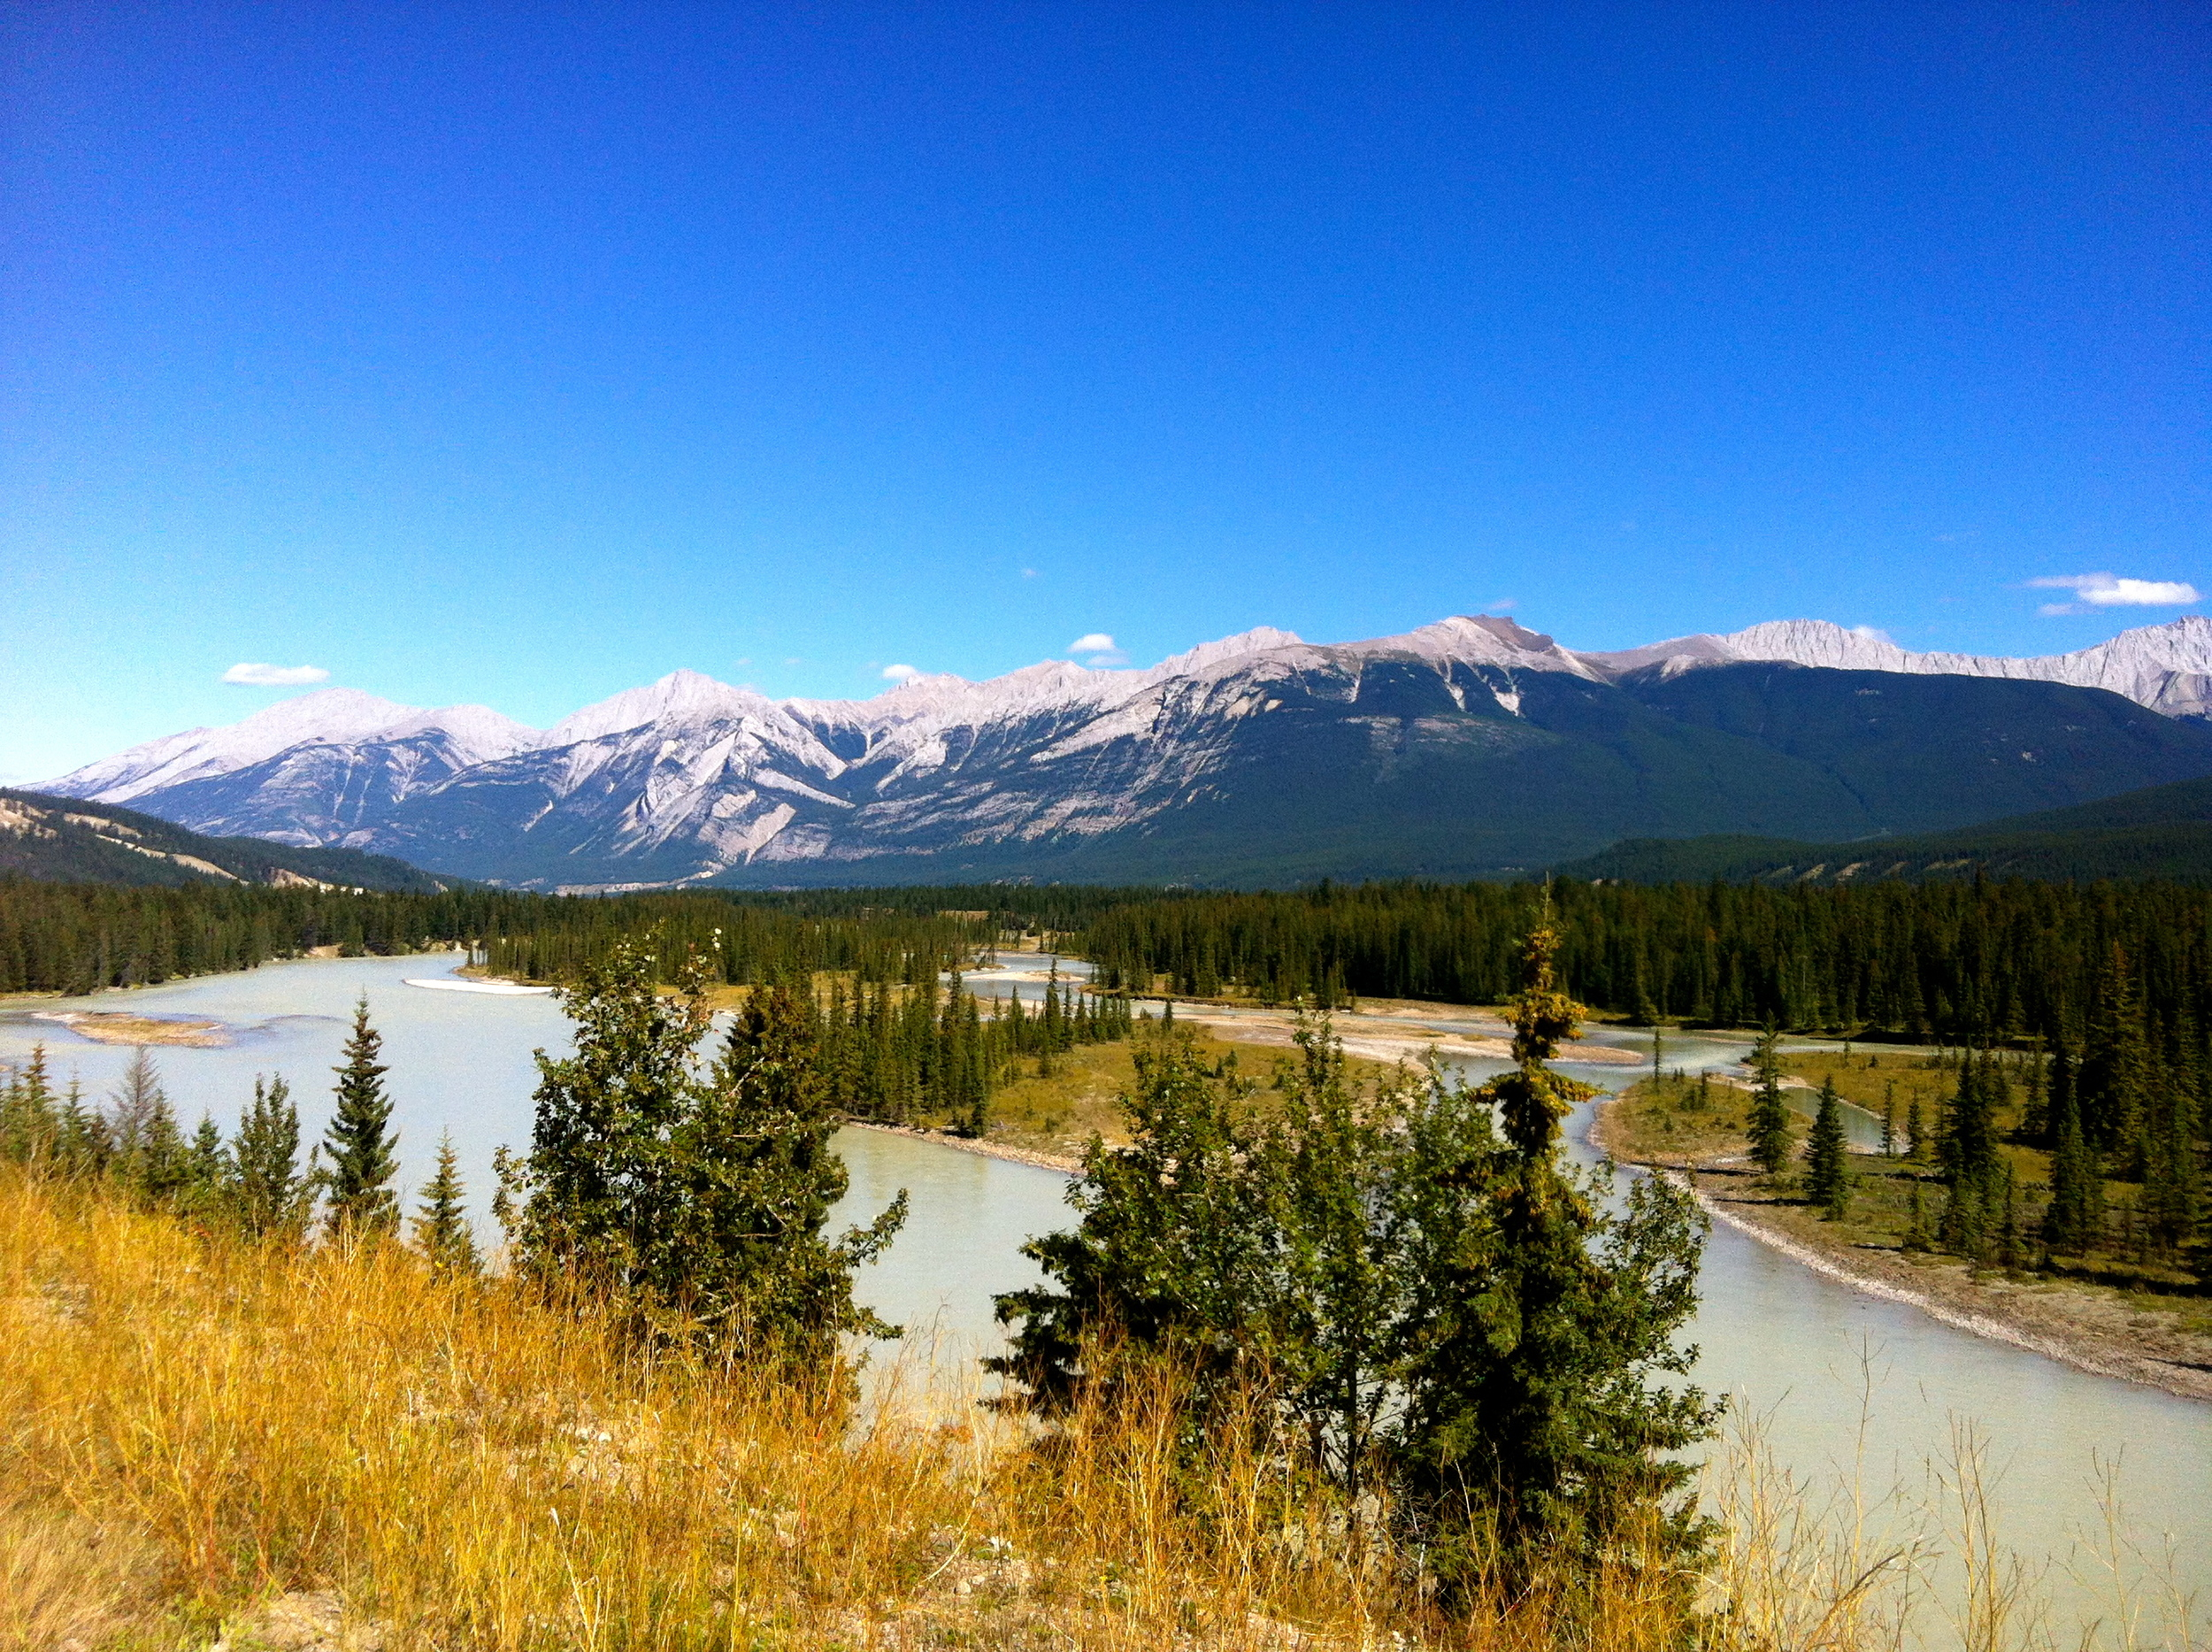 Looking out over the Miette River and Athabasca River junction